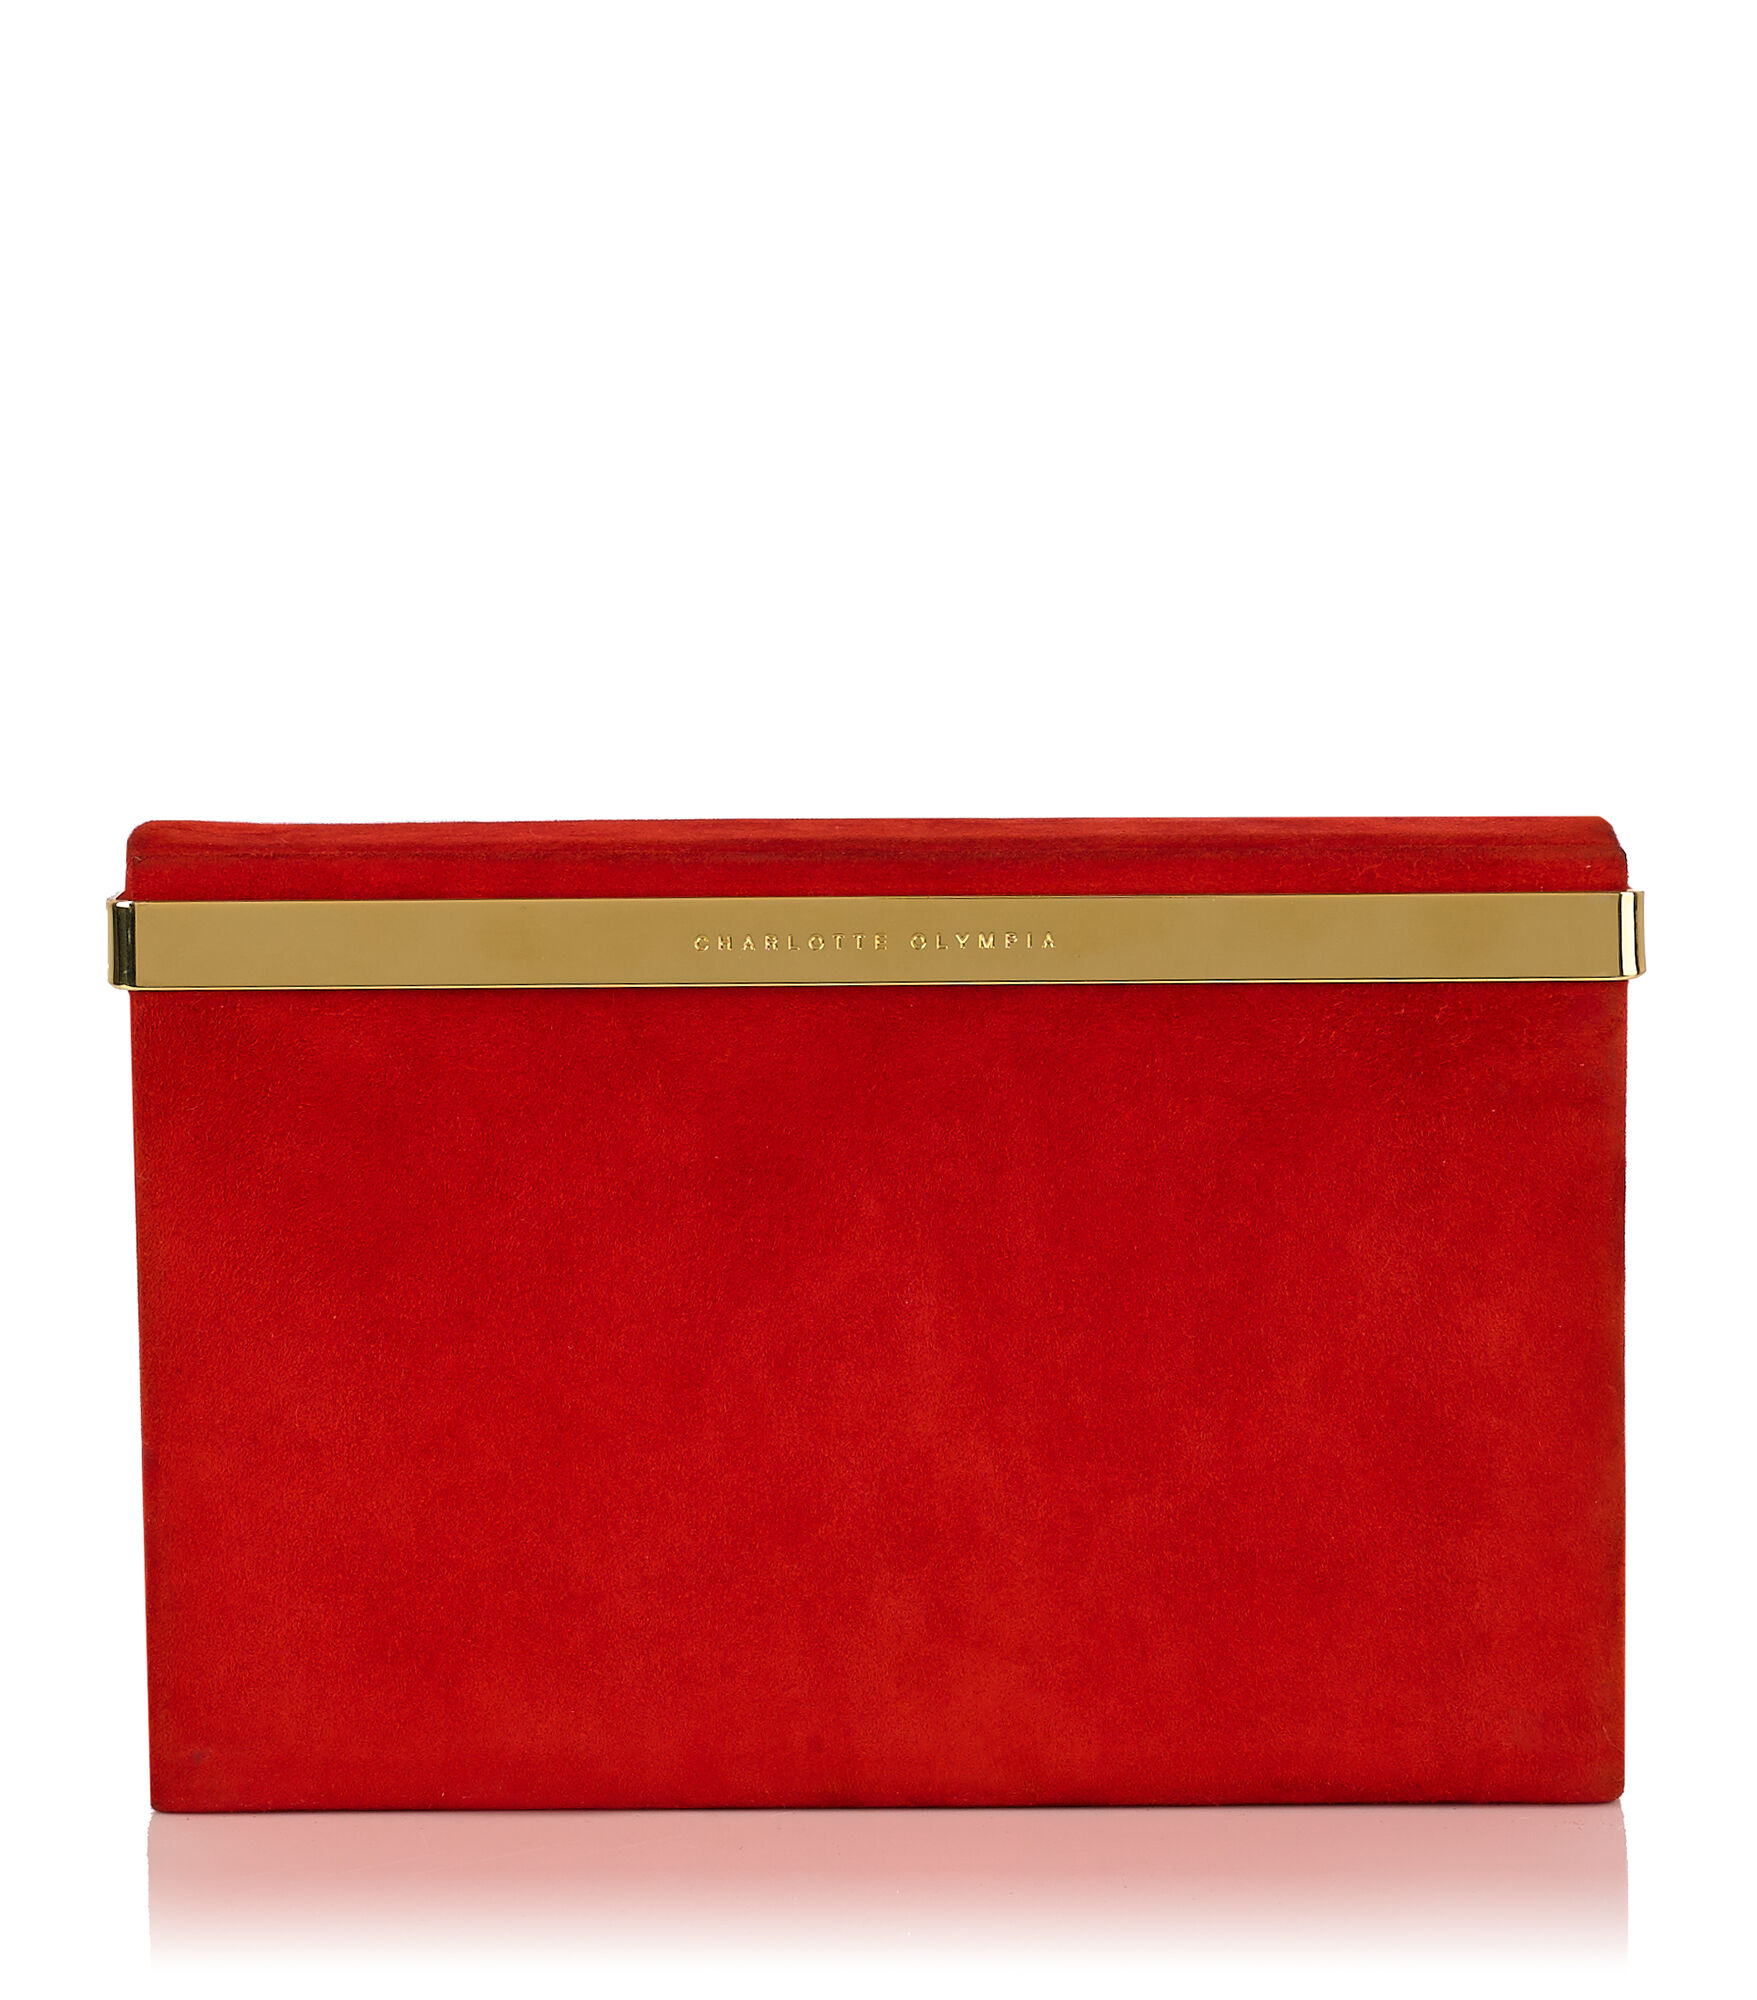 Charlotte Olympia Clutch and Handbags Women - VANITY CLUTCH RED Suede OS